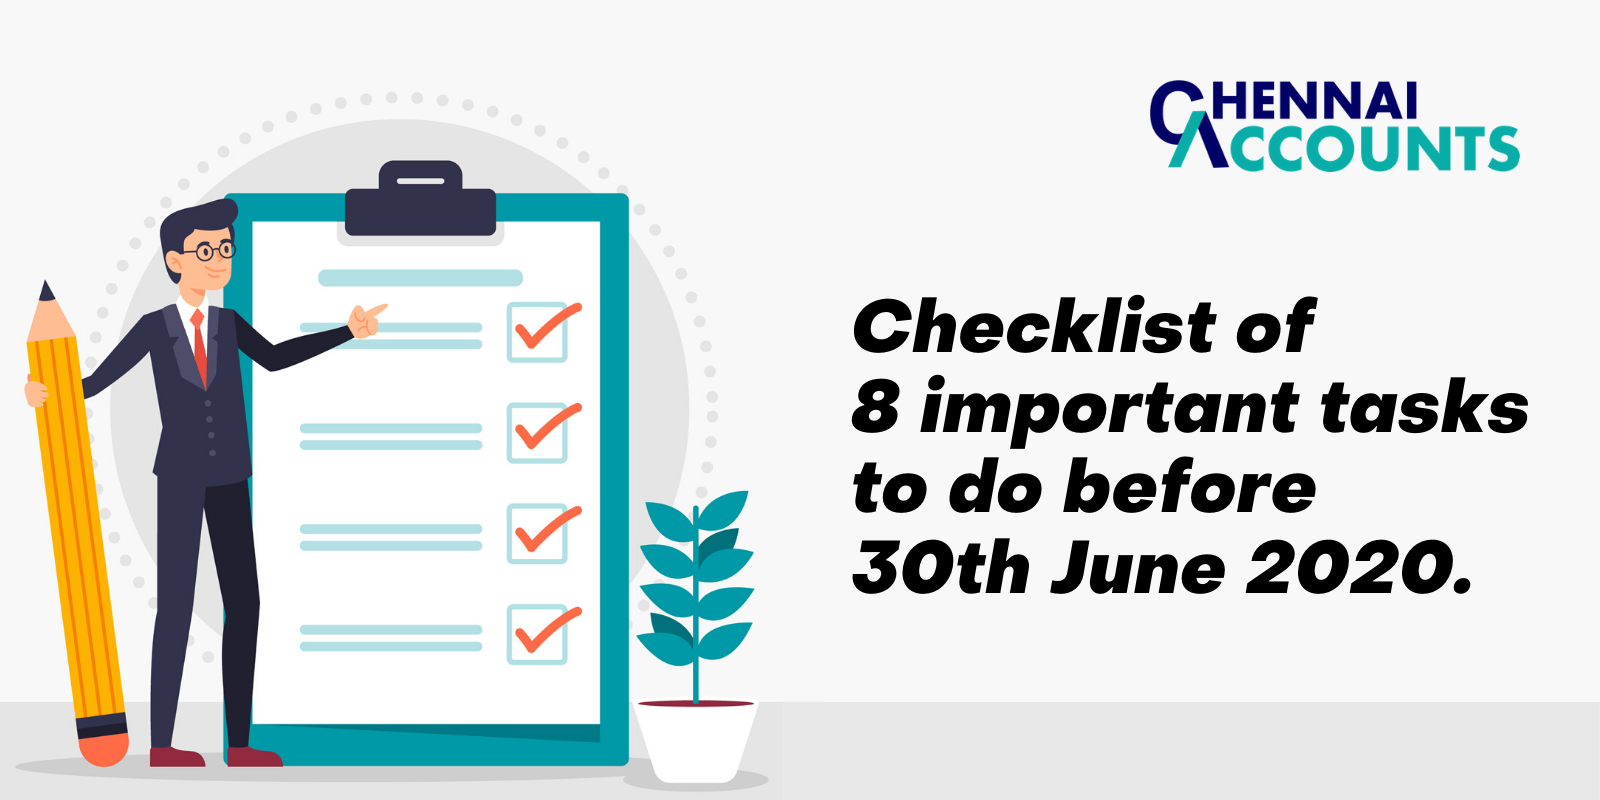 Checklist of 8 Important tasks to do before 30th June 2020